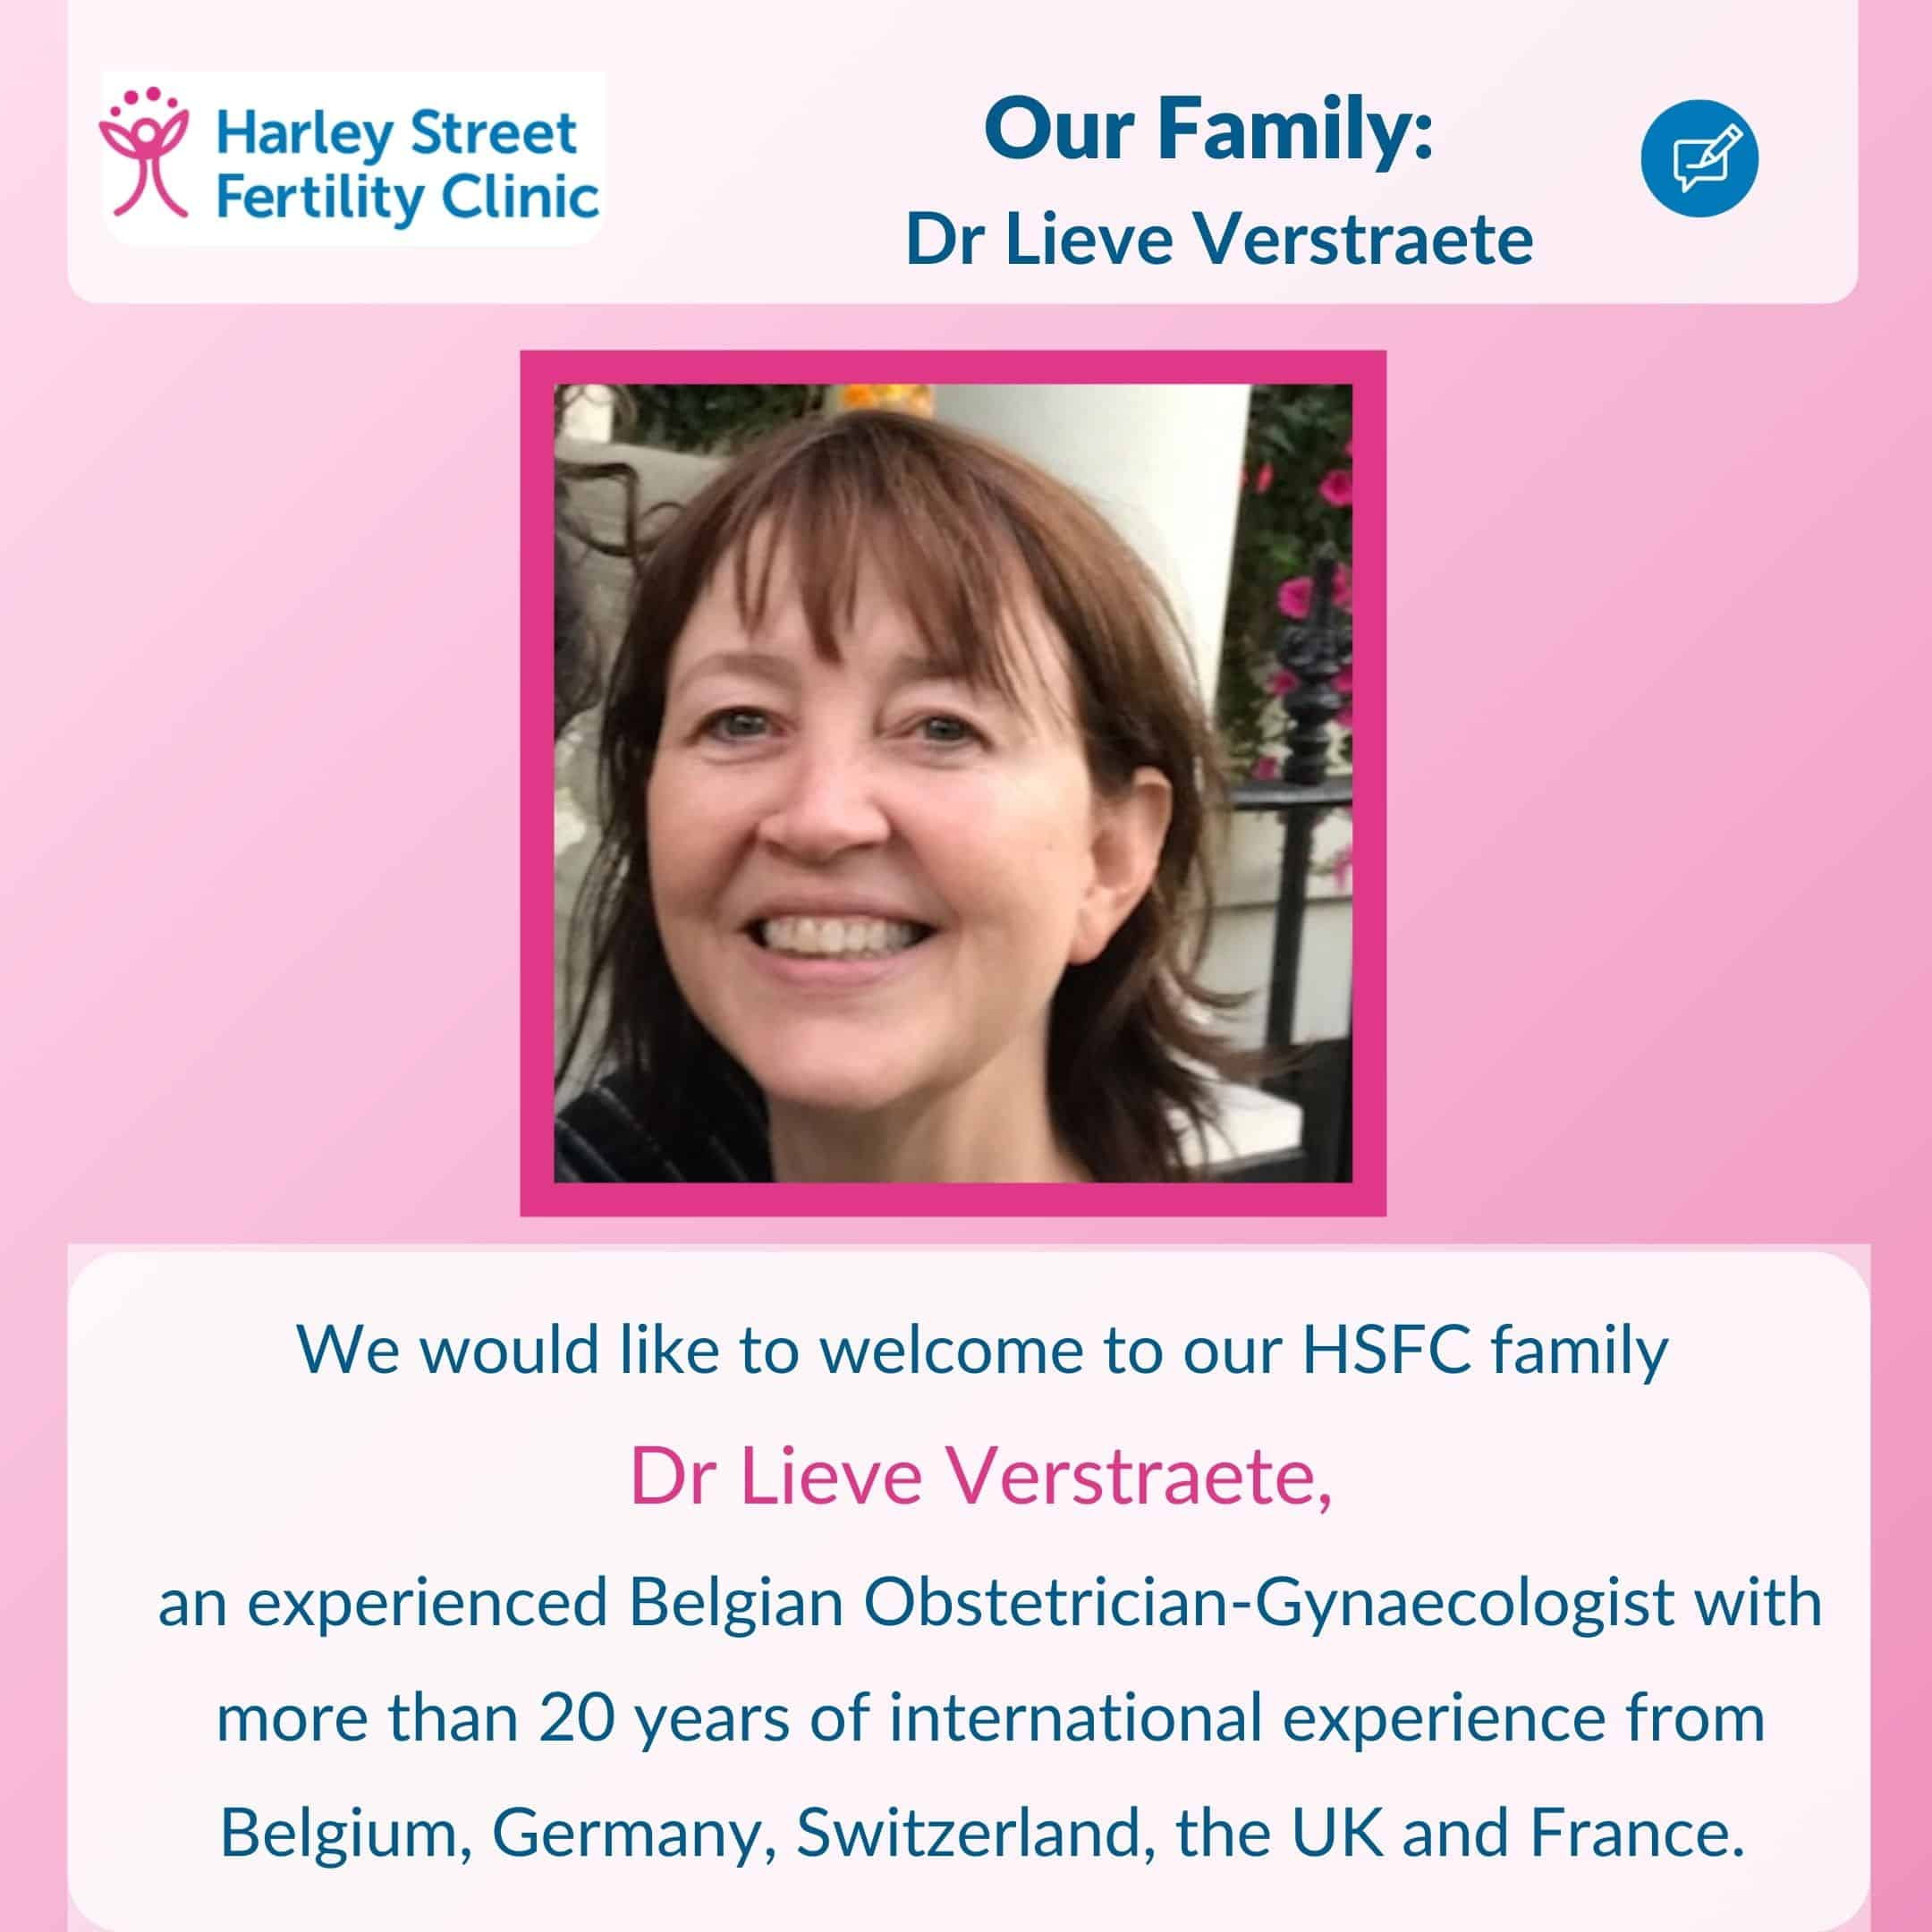 Introducing Dr Lieve Verstraete, MD, Consultant Gynaecologist & Fertility Specialist